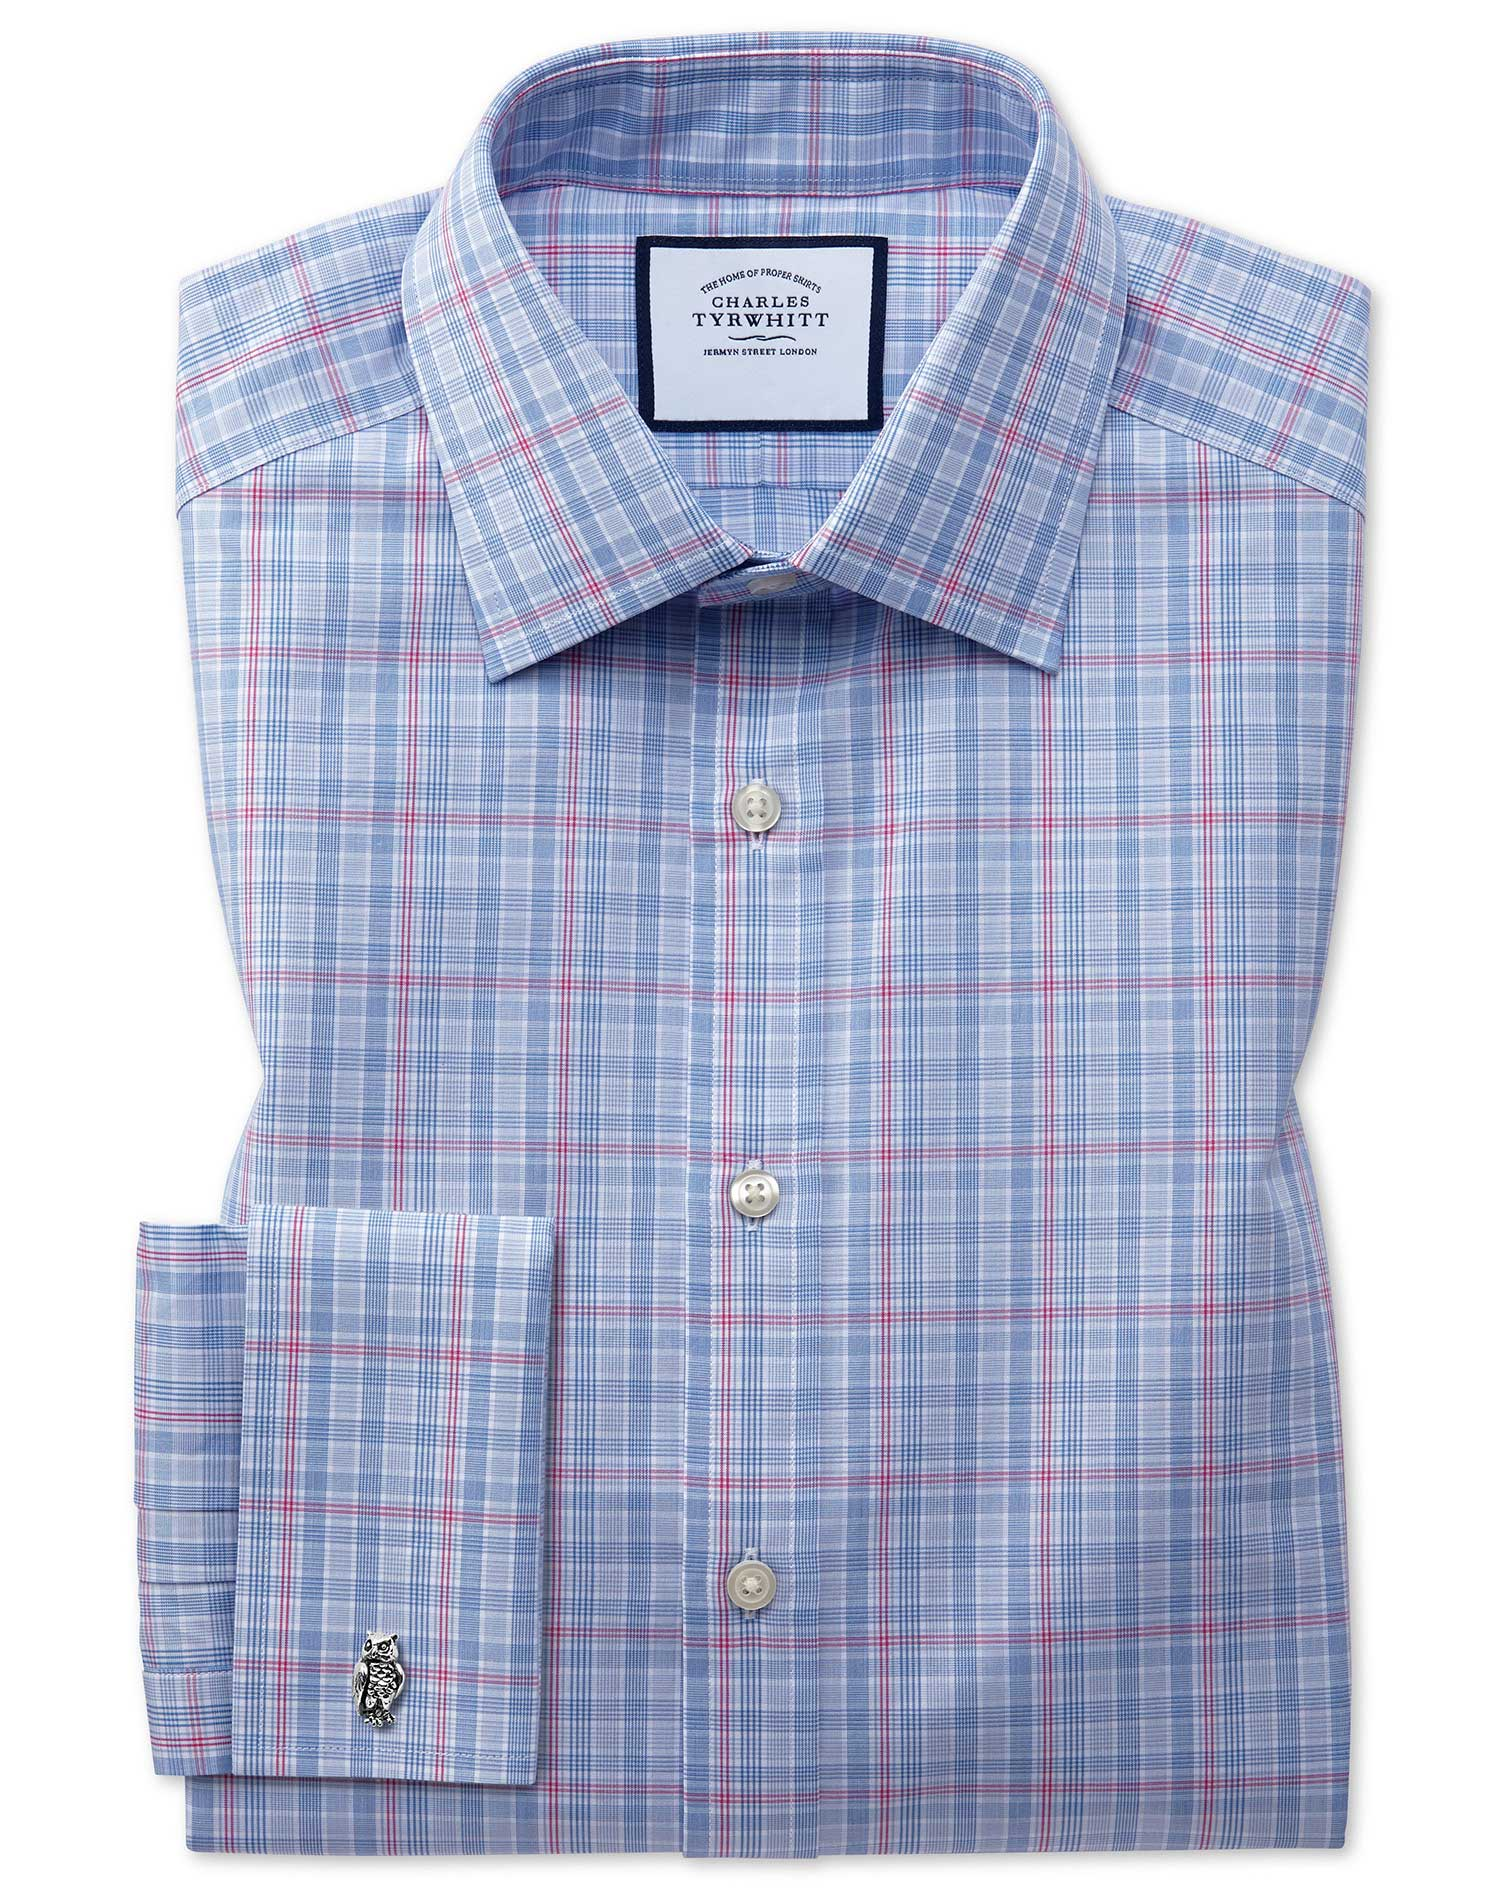 Classic Fit Blue and Pink Prince Of Wales Check Cotton Formal Shirt Single Cuff Size 15.5/32 by Char